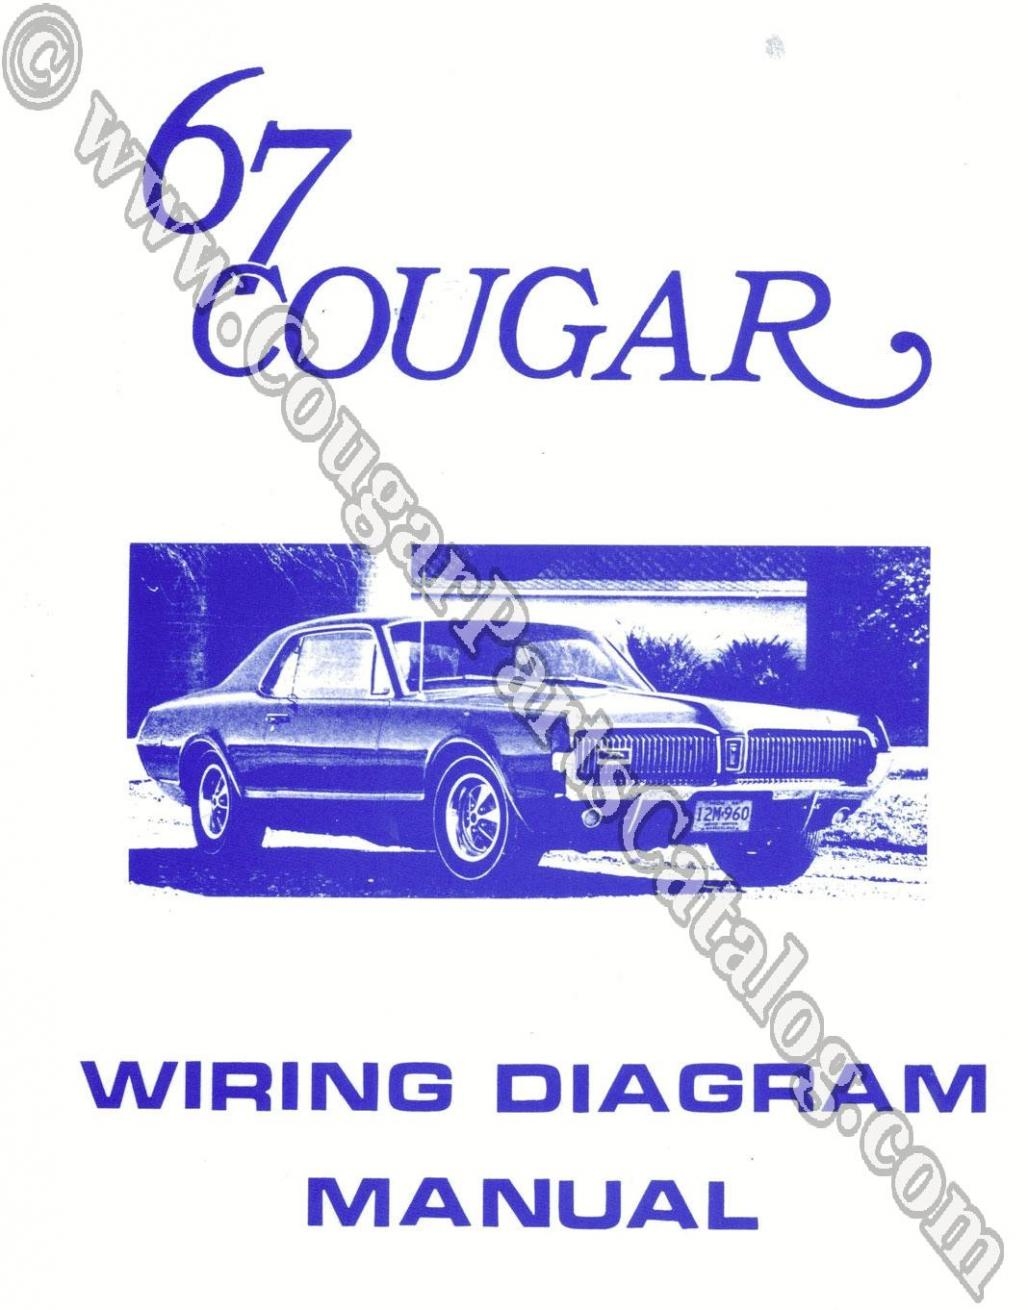 Manual - Wiring Diagram - Repro Fits: 1967 Mercury Cougar on